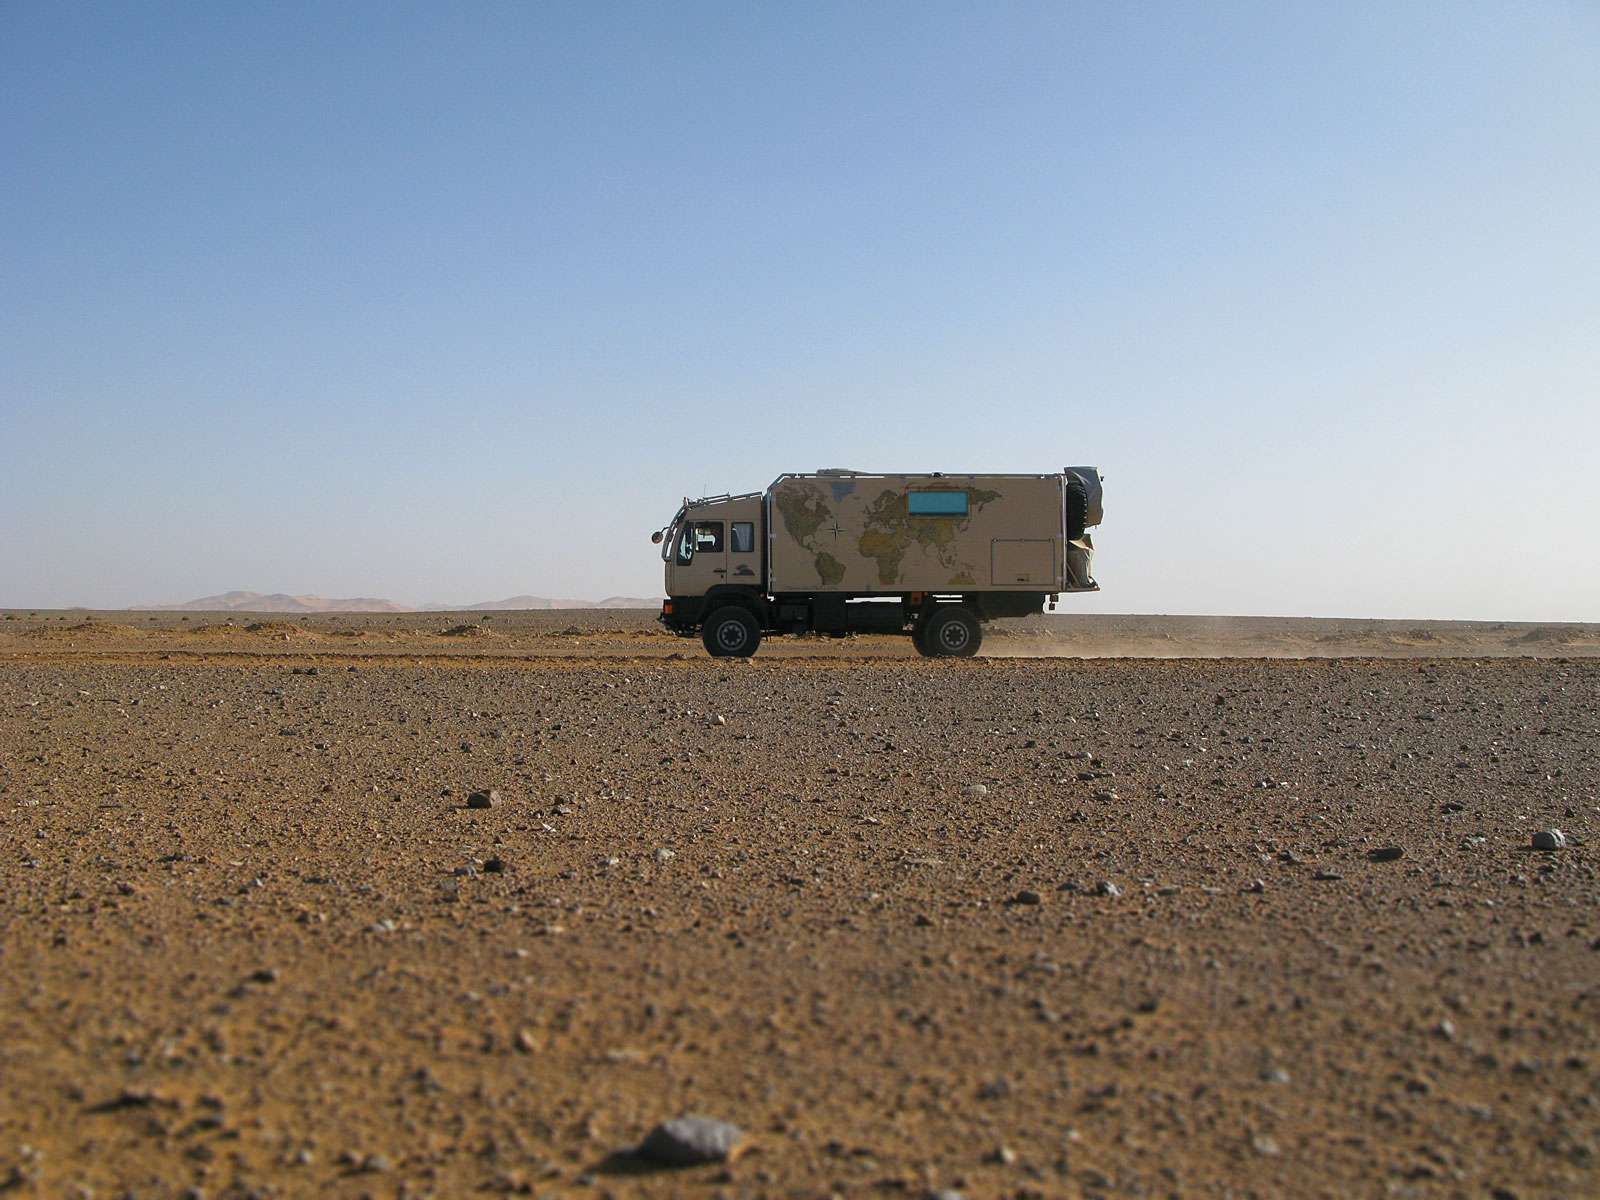 Truck in the desert of Erg Chegaga